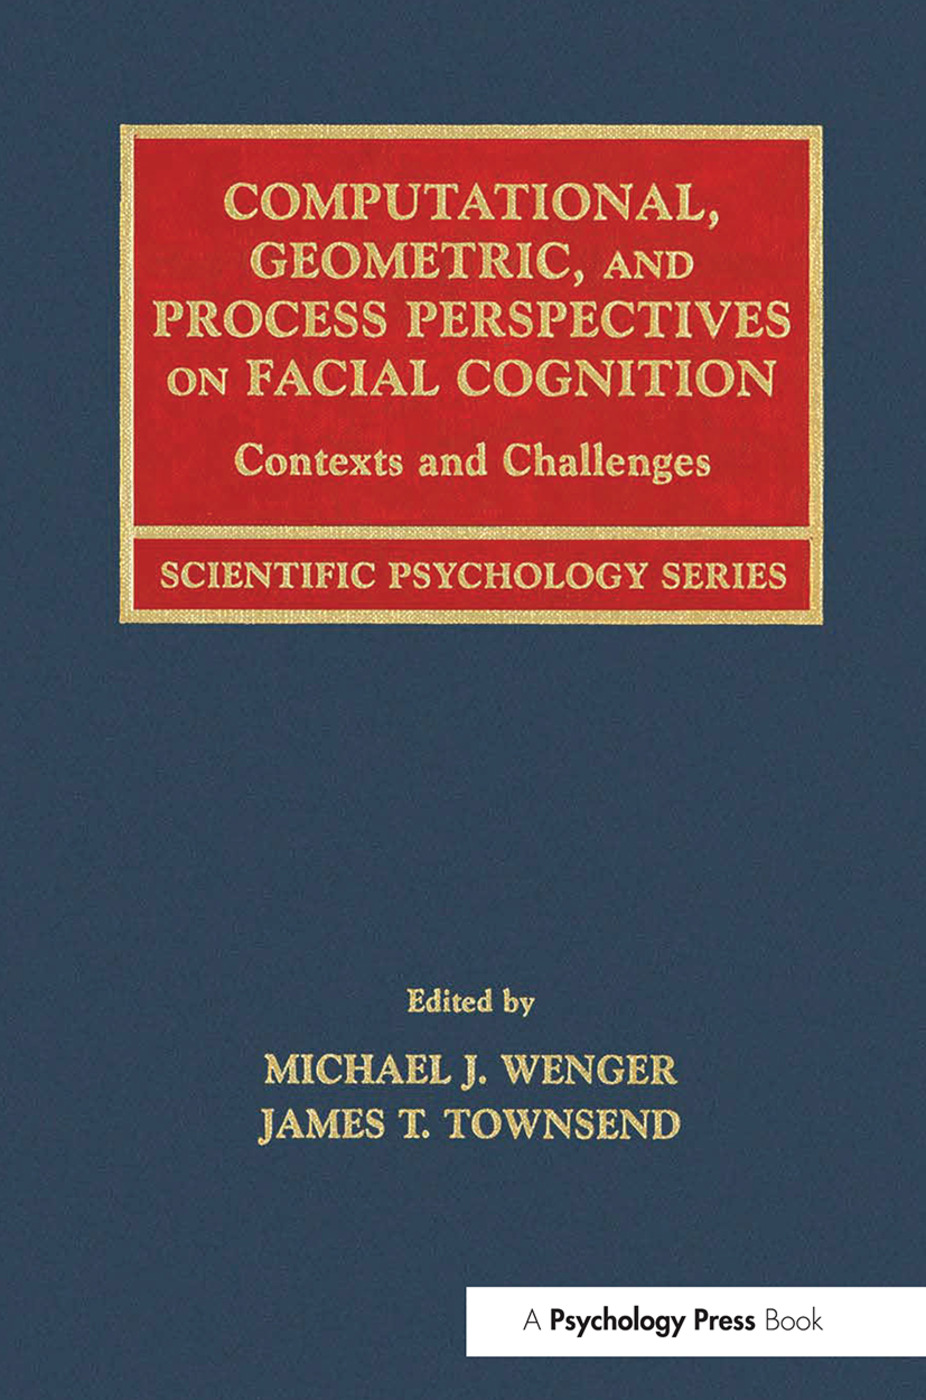 Computational, Geometric, and Process Perspectives on Facial Cognition